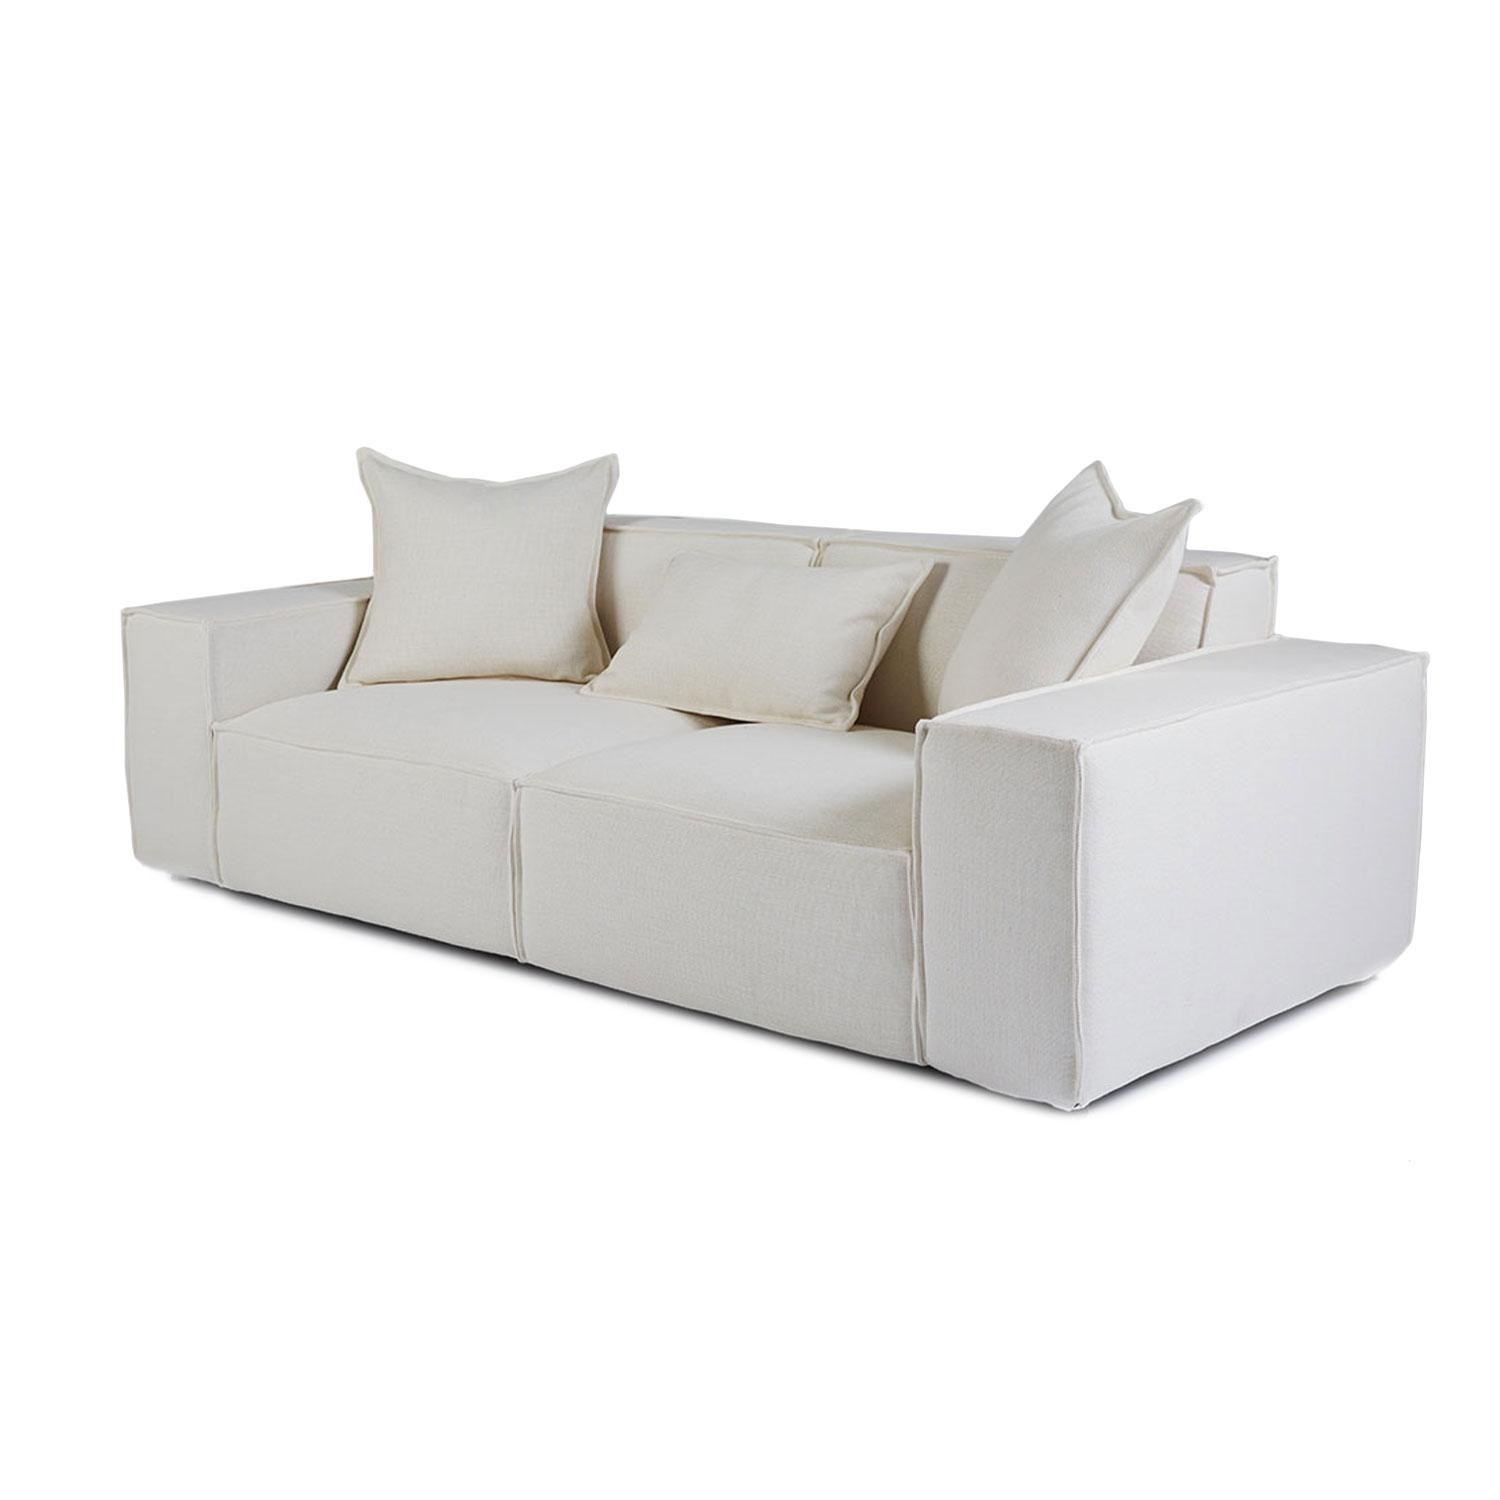 Scandinavian Mila White Fabric Sofa – 2 4 Seater Lounge With White Fabric Sofas (Image 15 of 20)